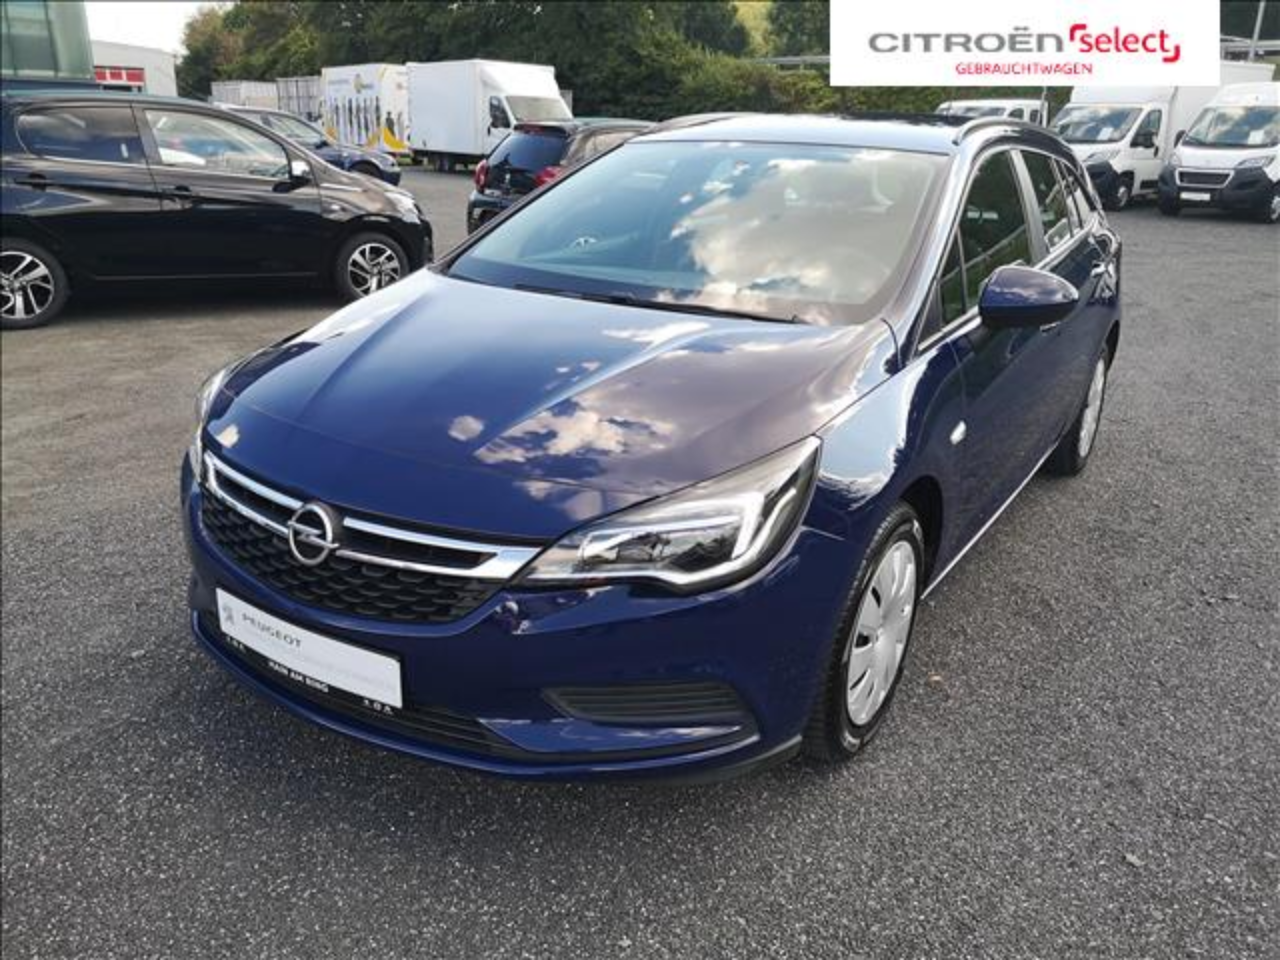 Opel Astra Sportstourer 1.6 CDTI Edition S&S